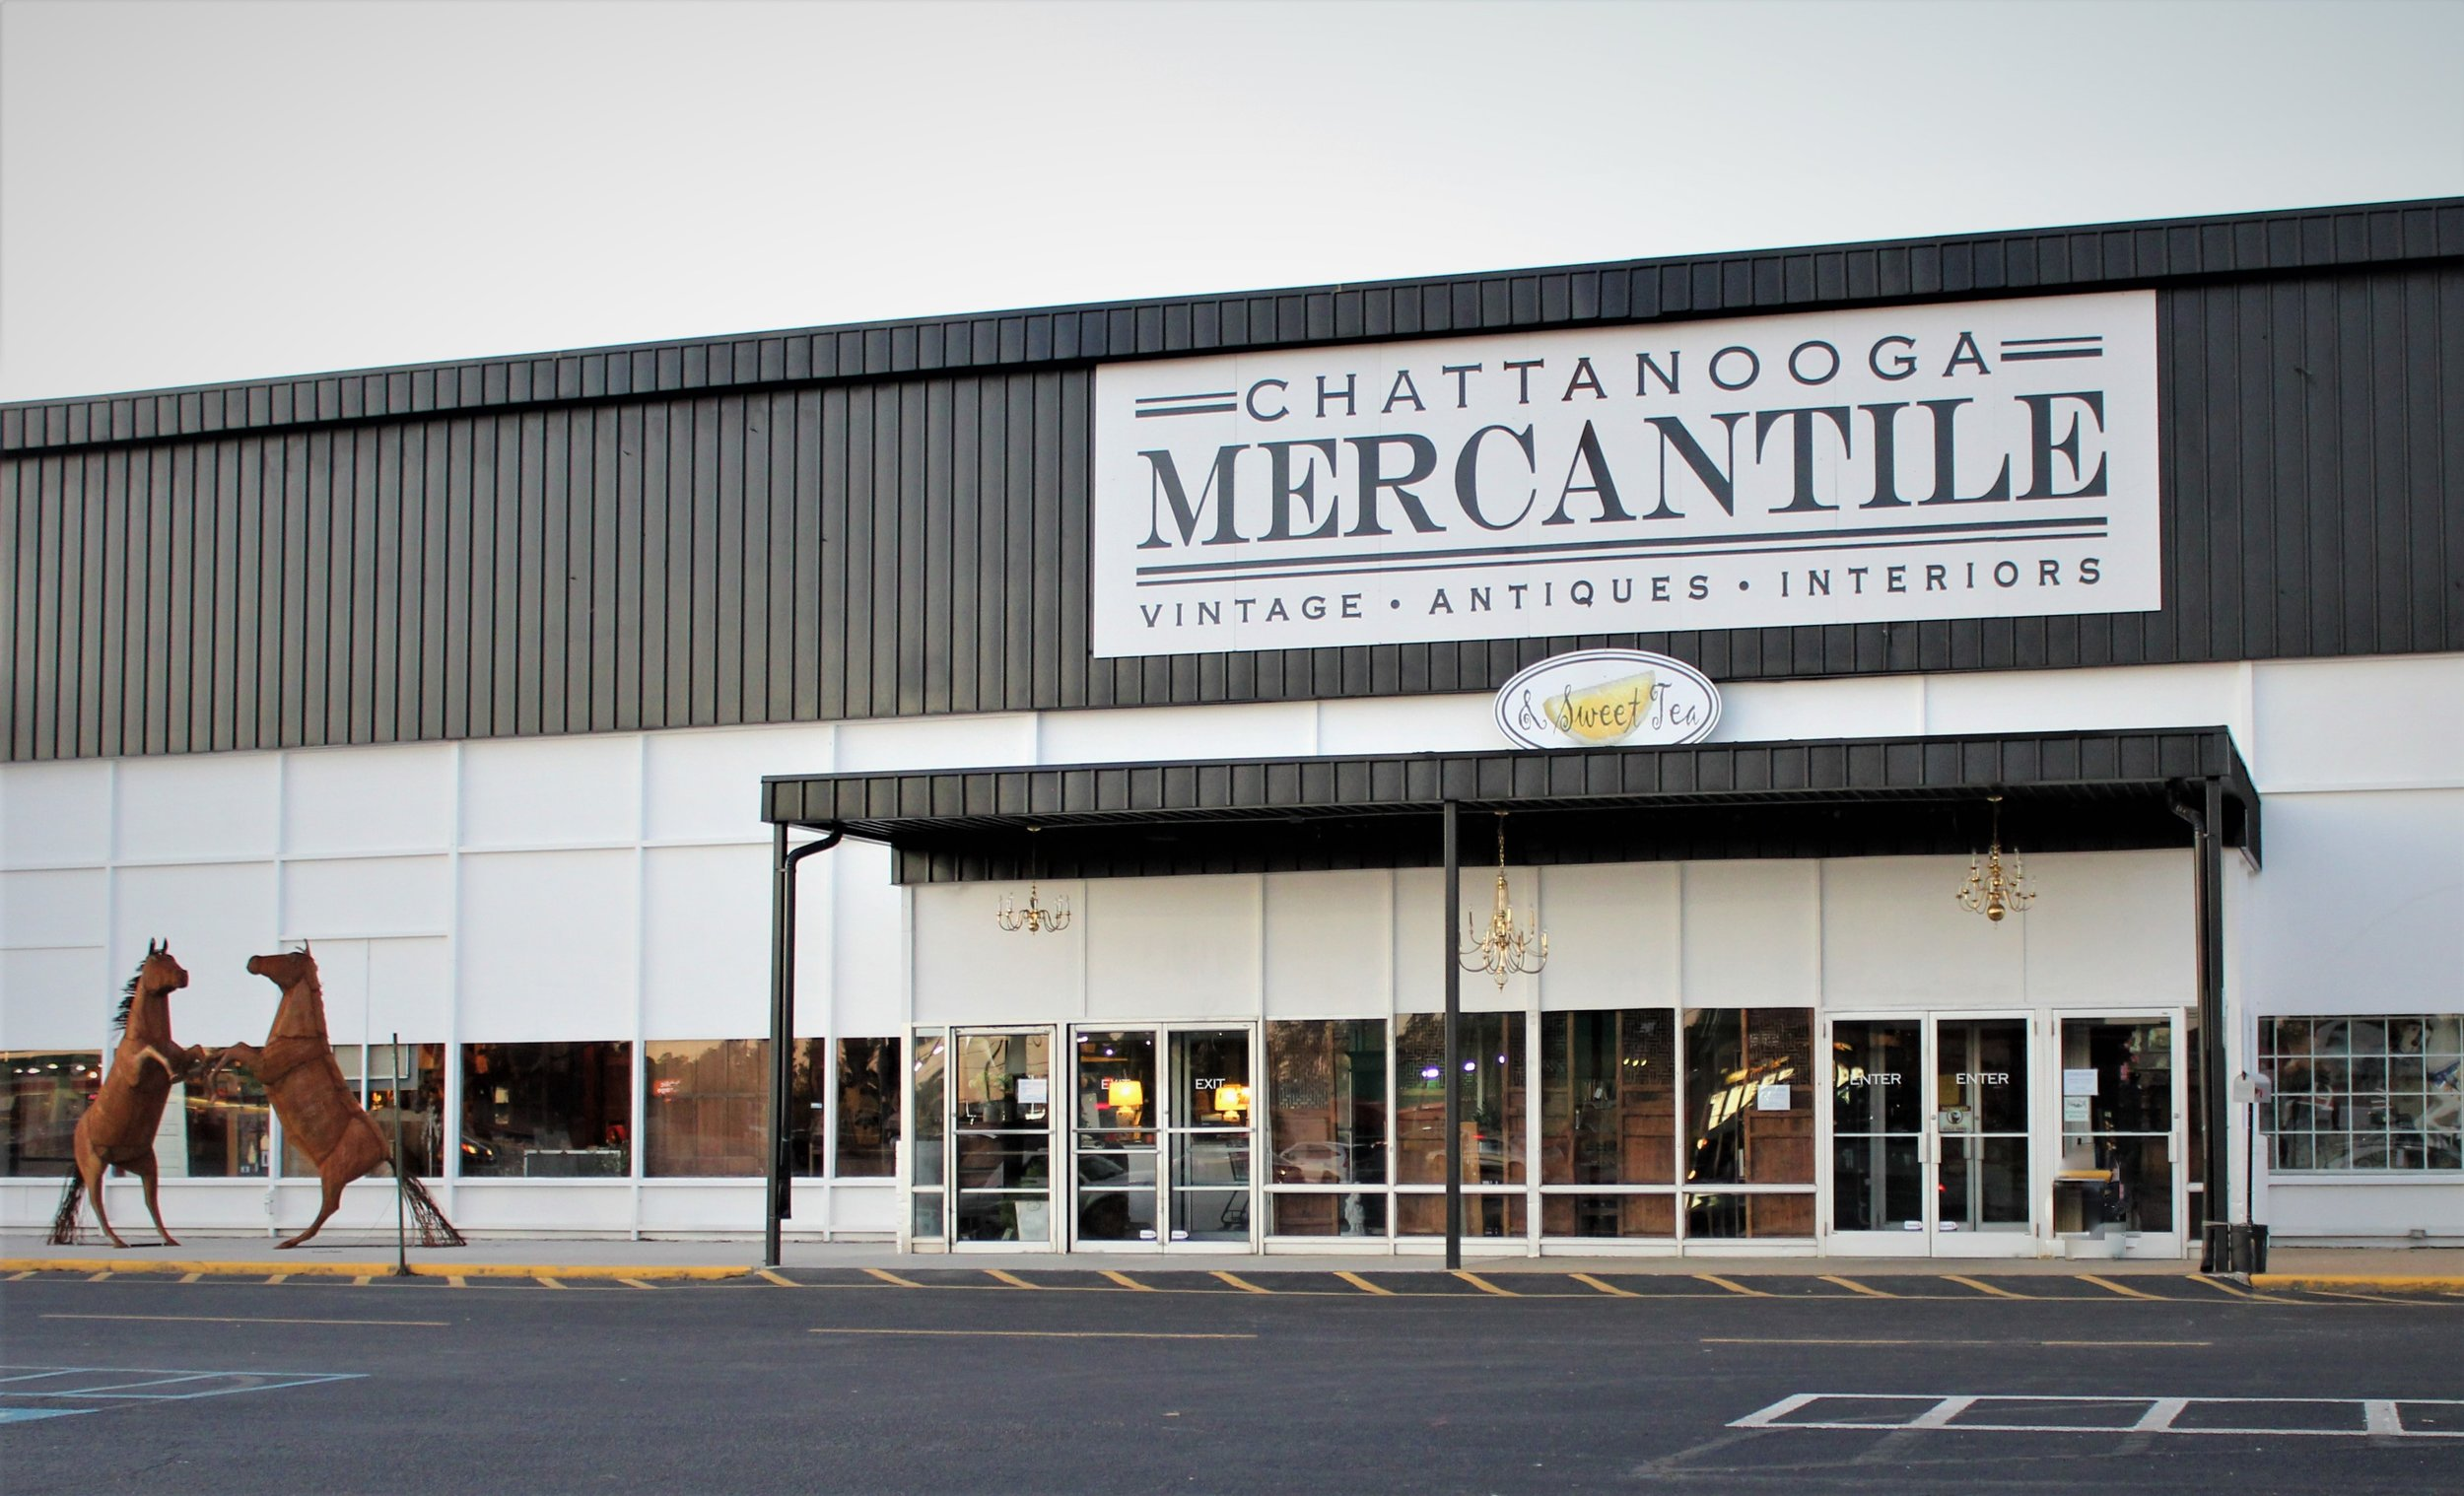 Chattanooga Mercantile